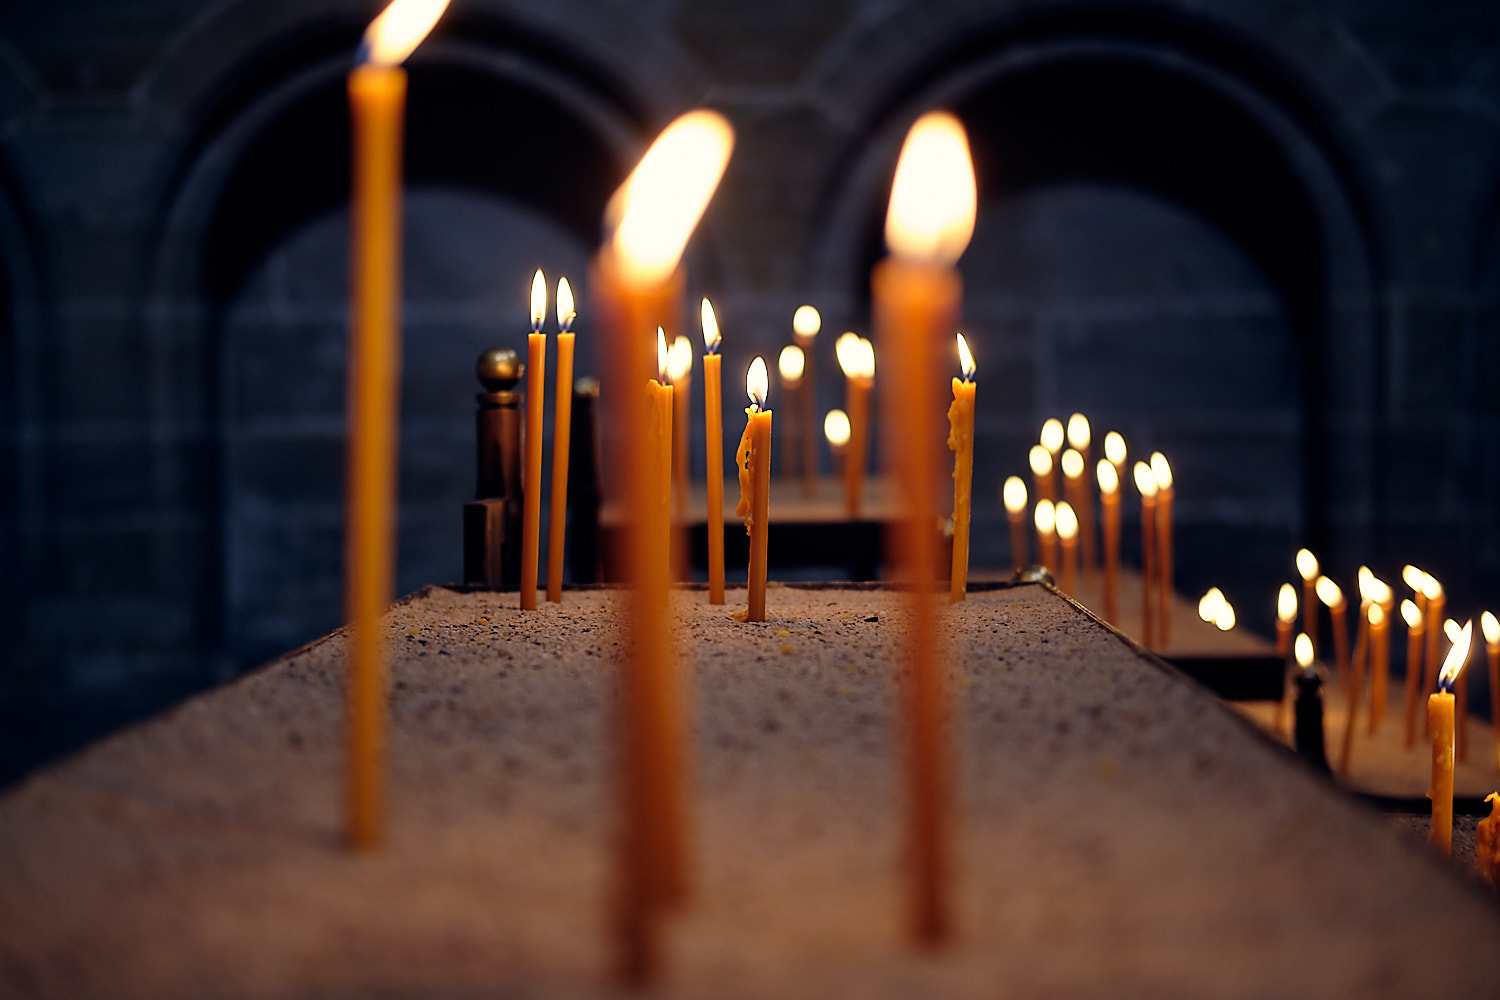 Candlelight at the cathedral of the city of Bamberg, Germany